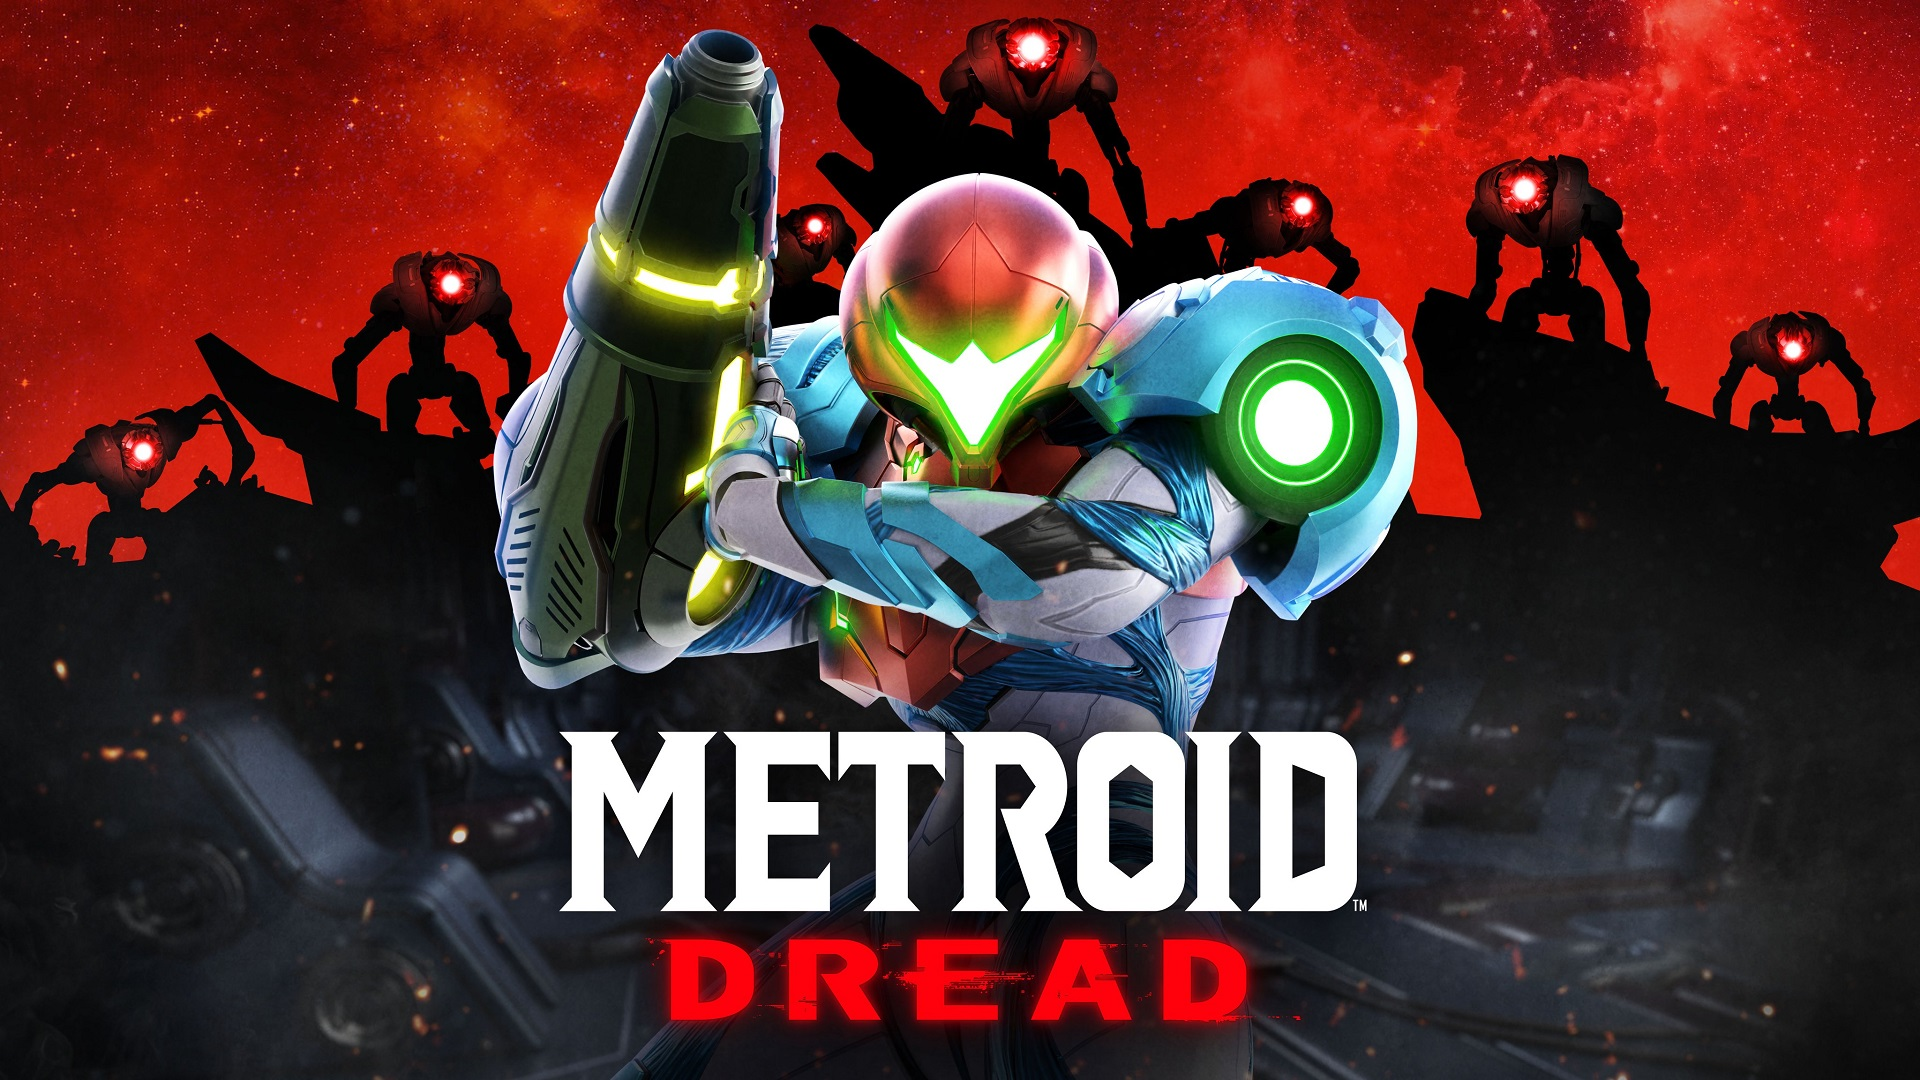 Metroid Dread Announced – 2D Title Releases October 8th on Switch